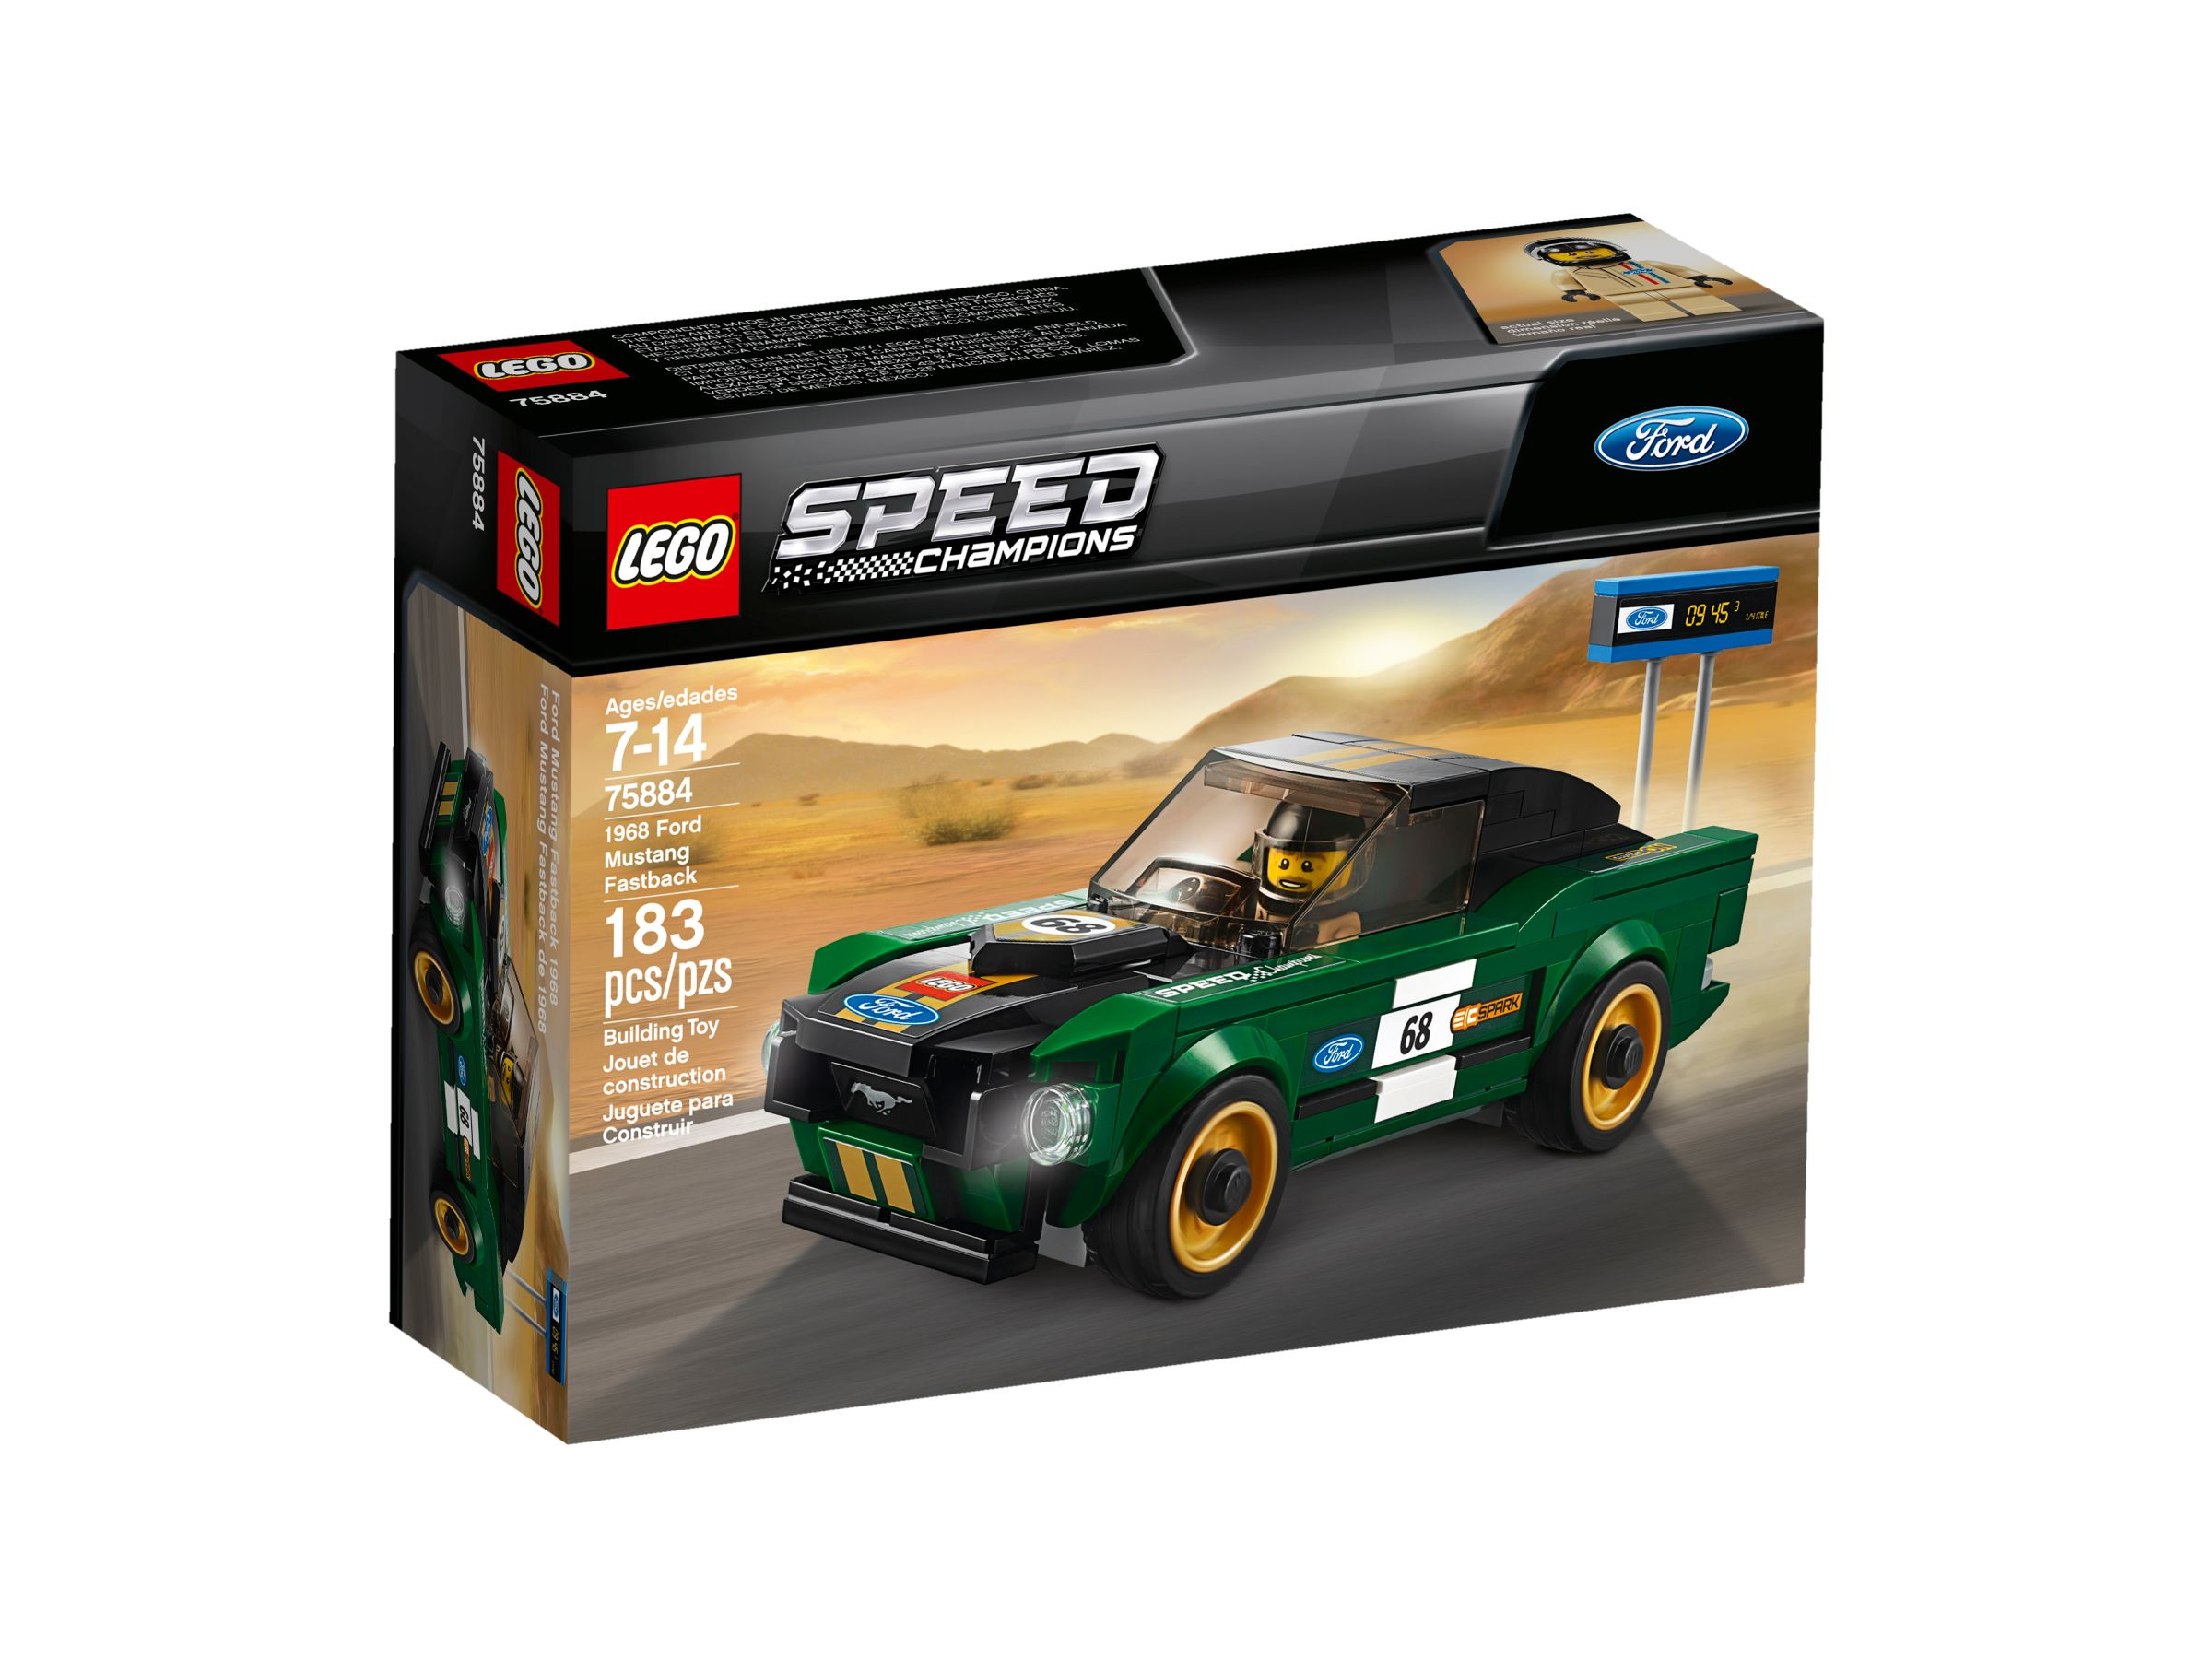 LEGO Speed Champions 75884 Ford Mustang Fastback 1968 LEGO_75884_alt1.jpg